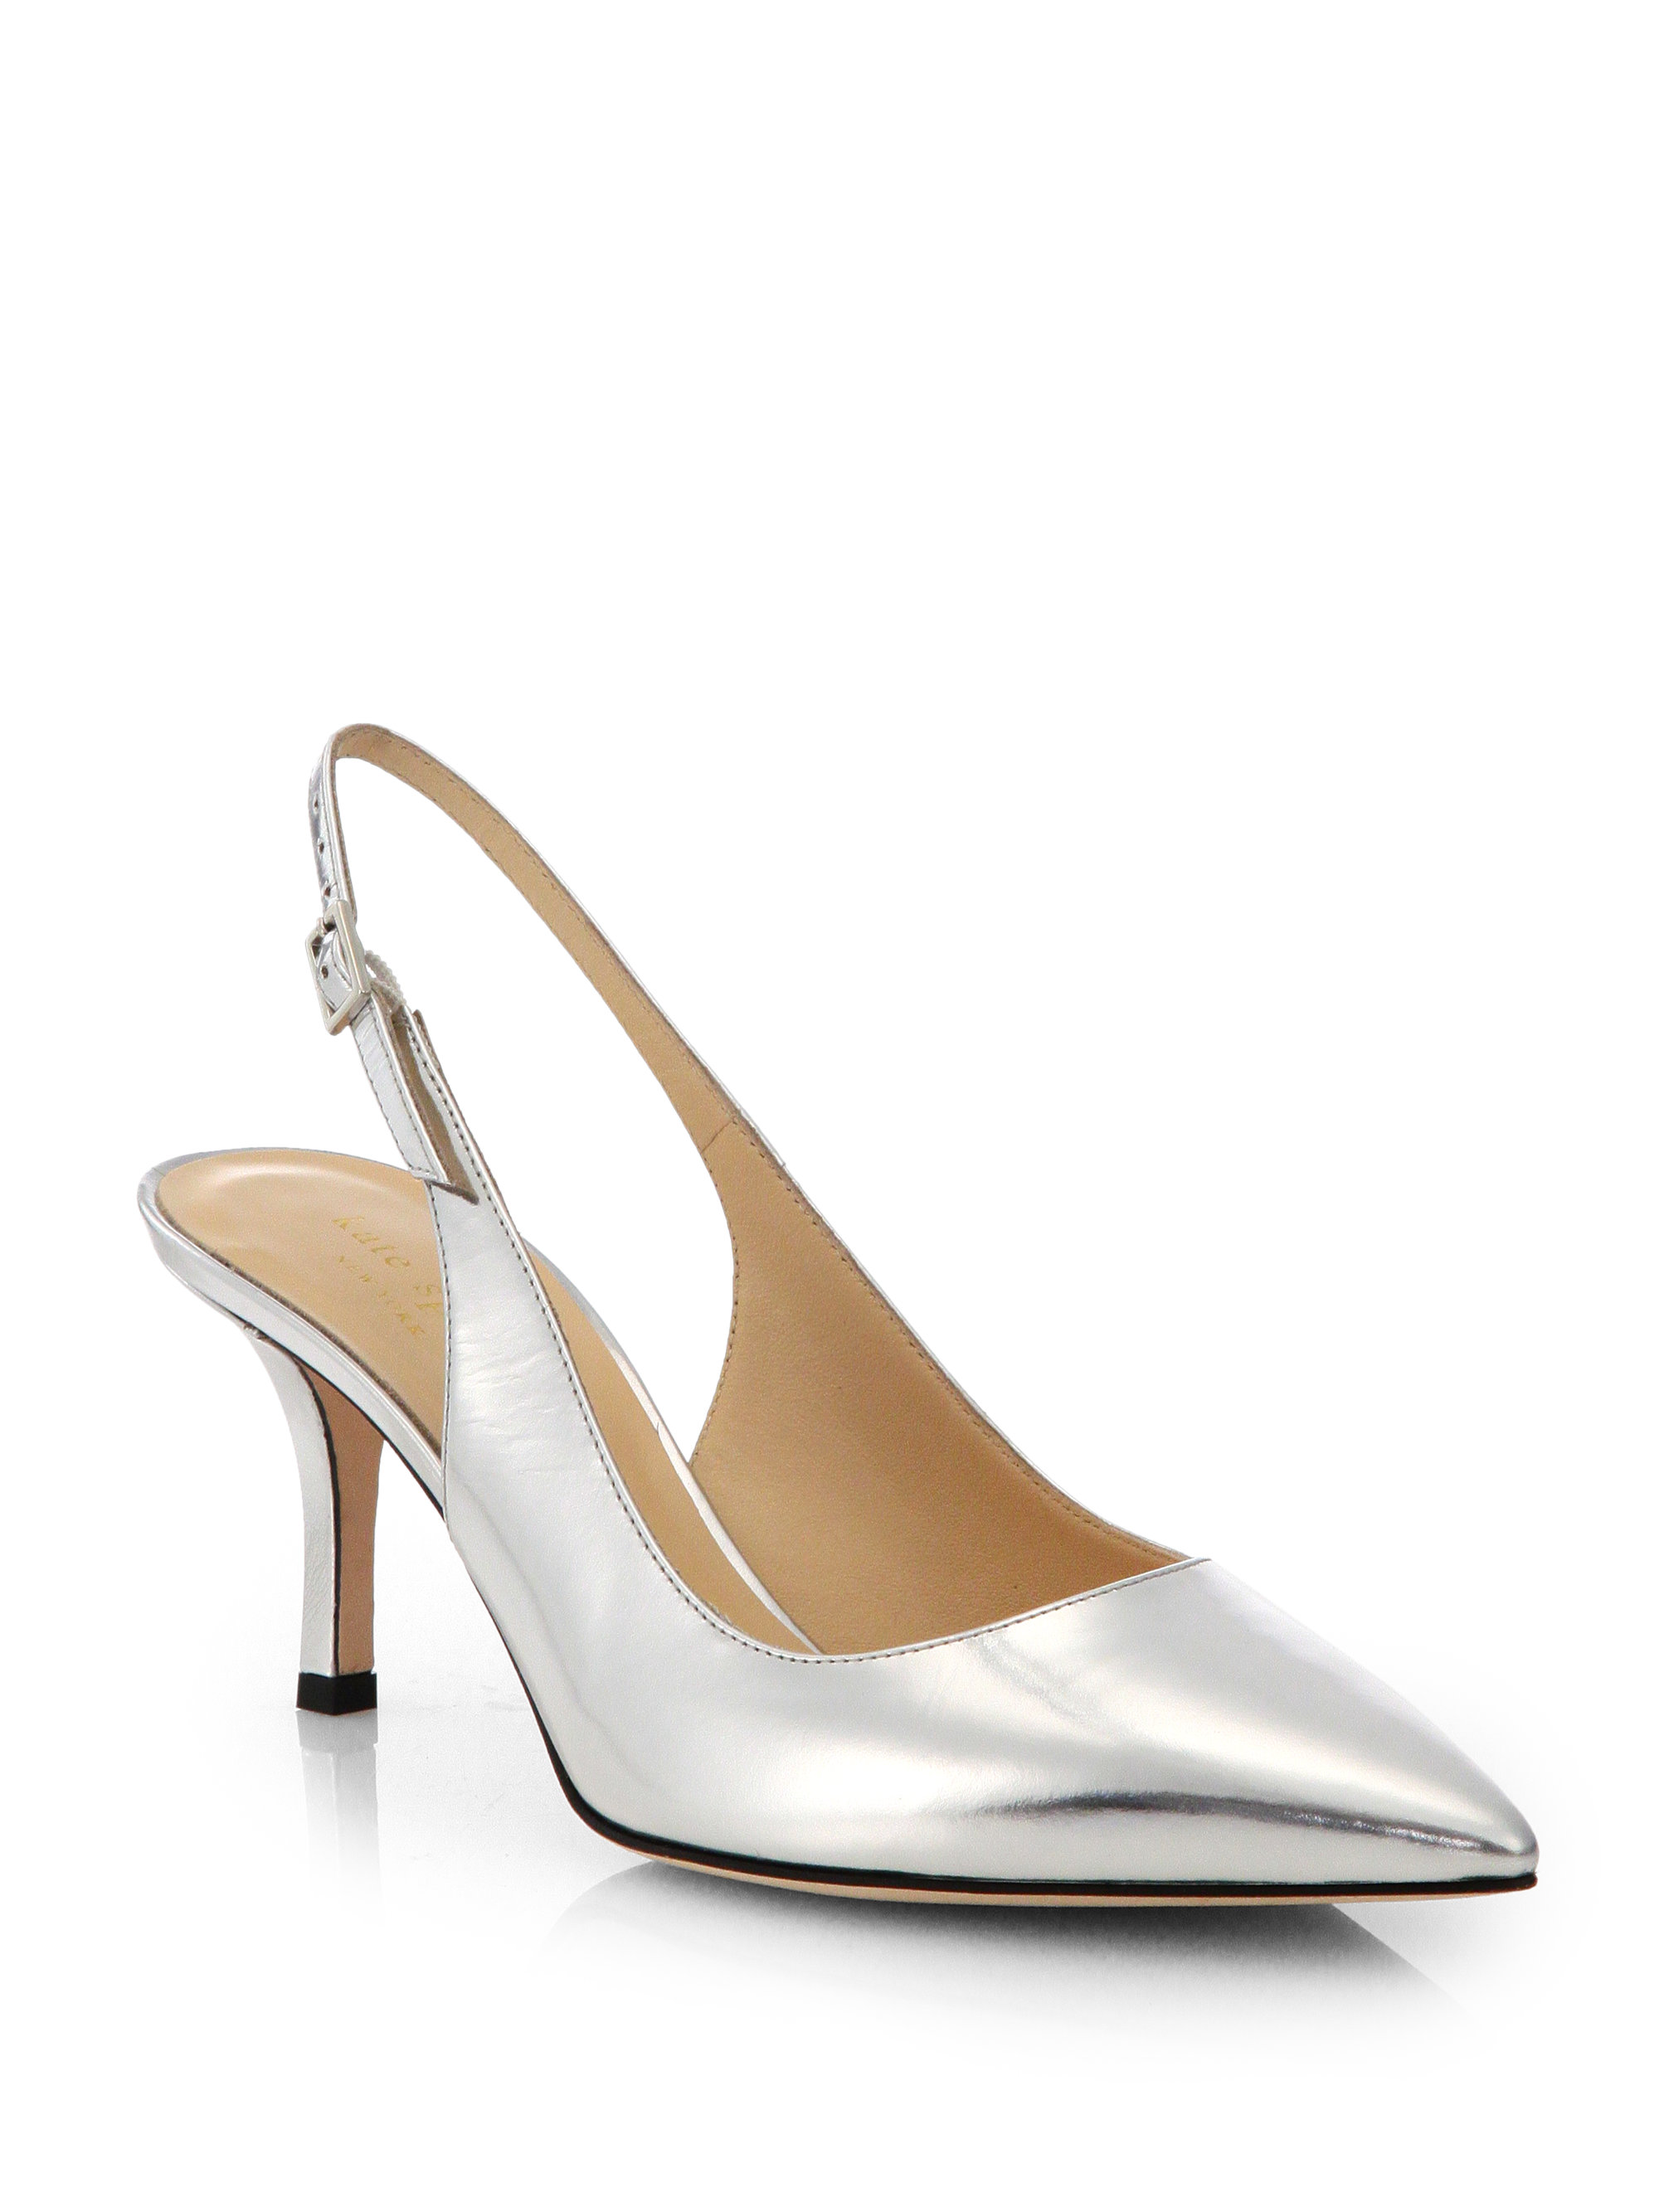 Kate Spade Shoes Sale